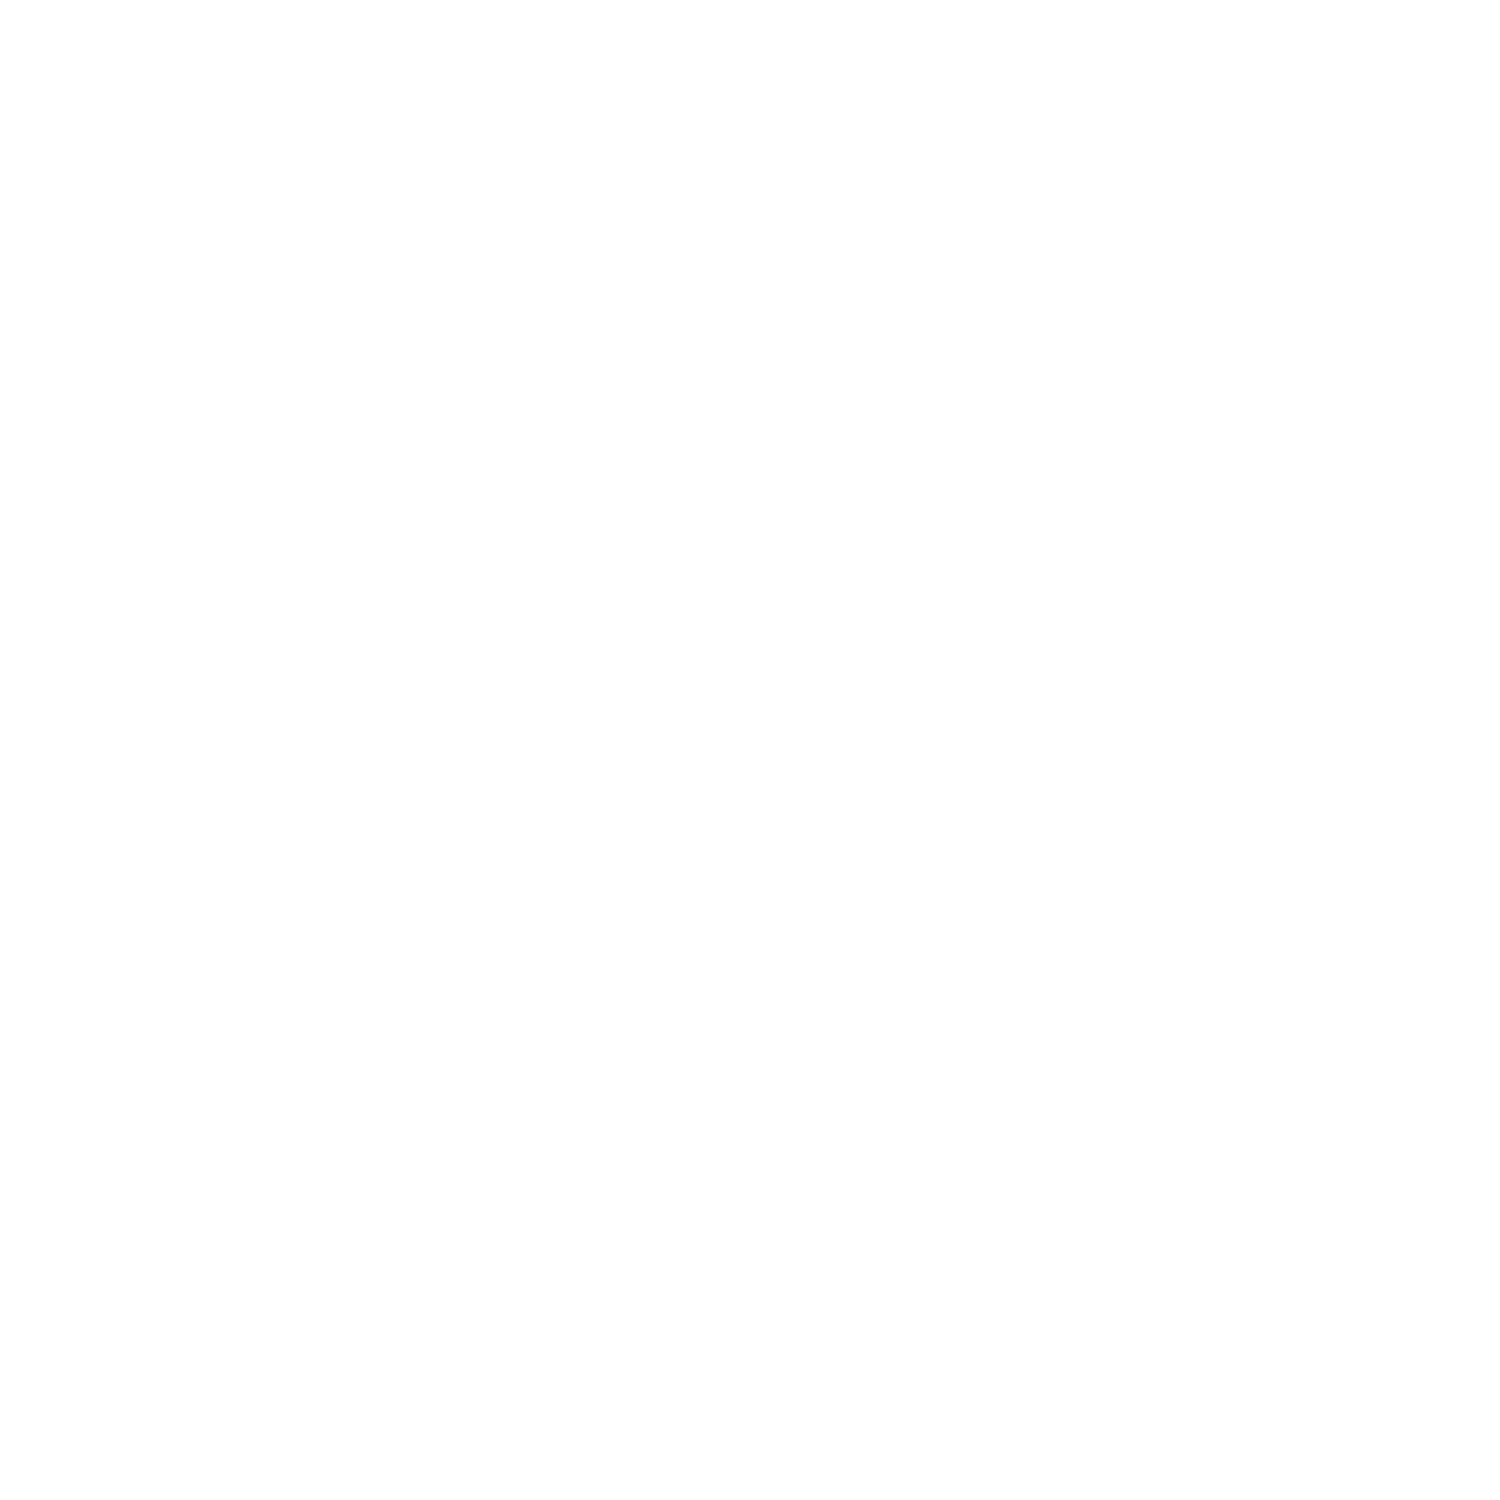 Sisters and the sea